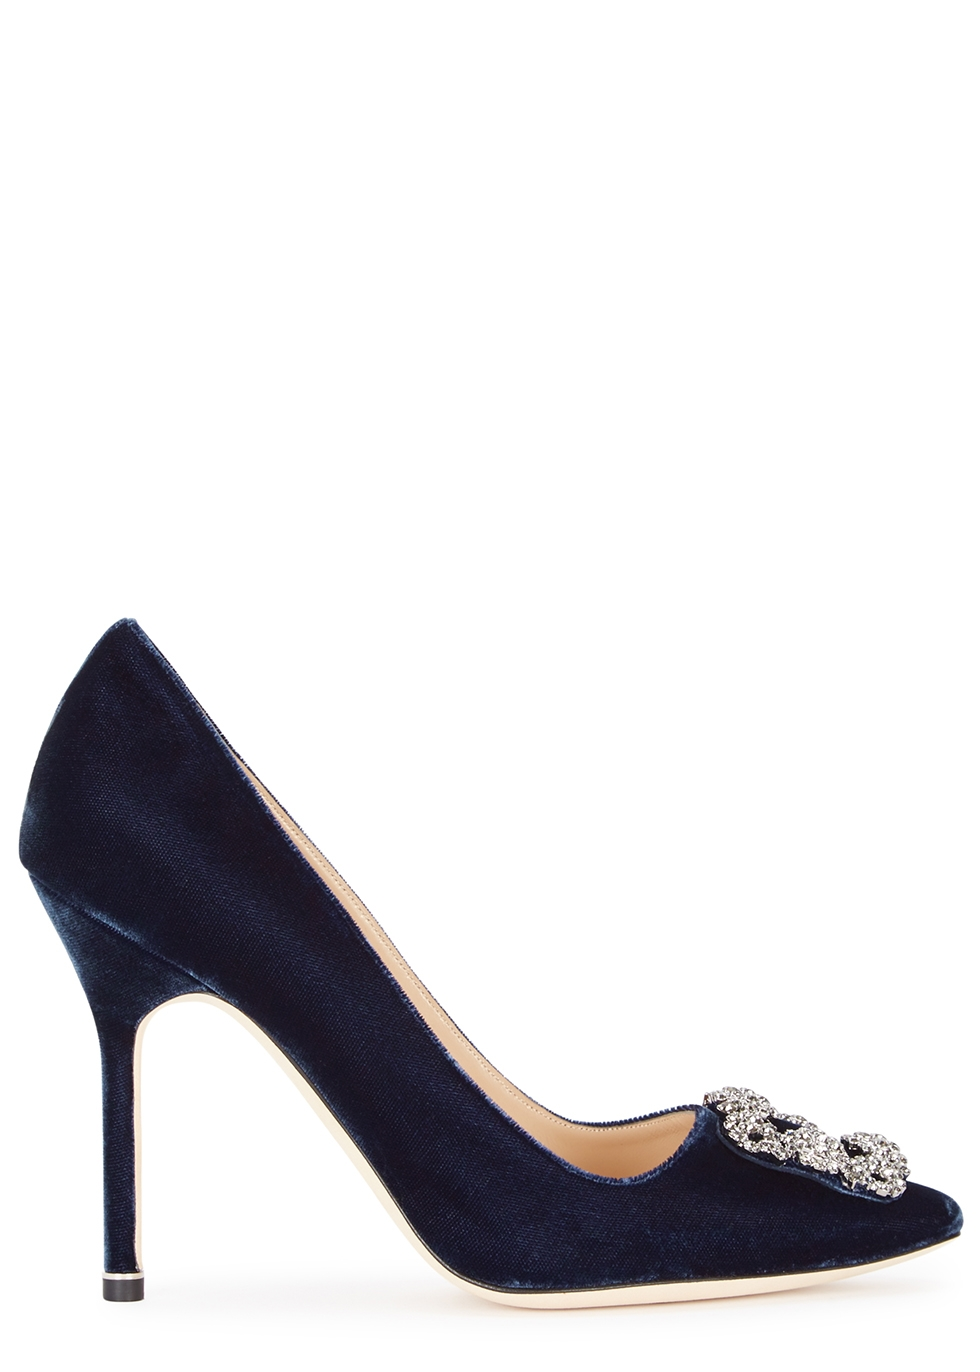 manolo blahnik shoes heels pumps sandals harvey nichols rh harveynichols com